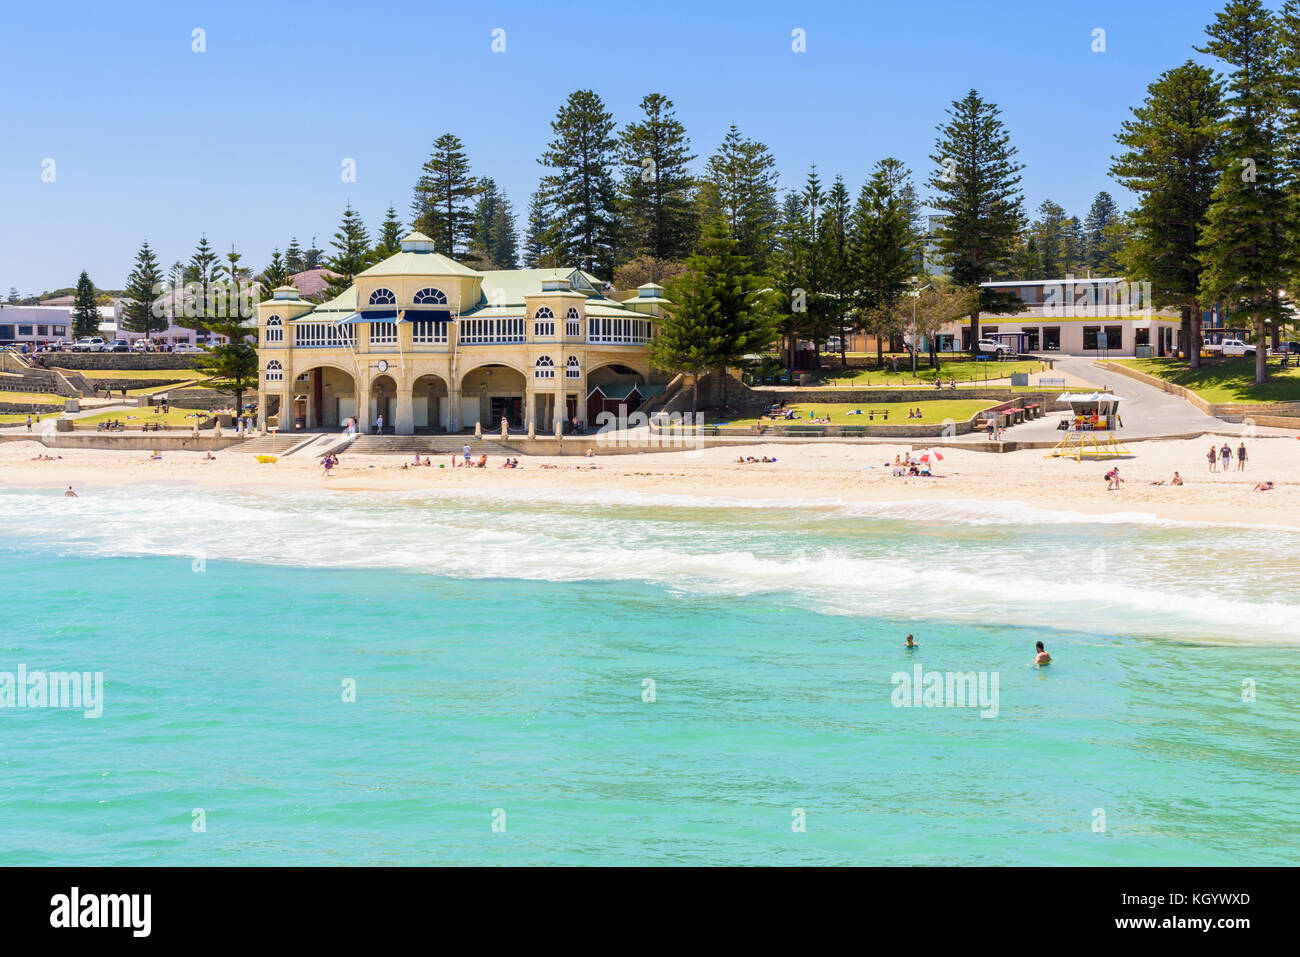 The Indiana Tea House building, the iconic landmark now a restaurant called Indiana on Cottesloe Beach, Cottesloe, - Stock Image